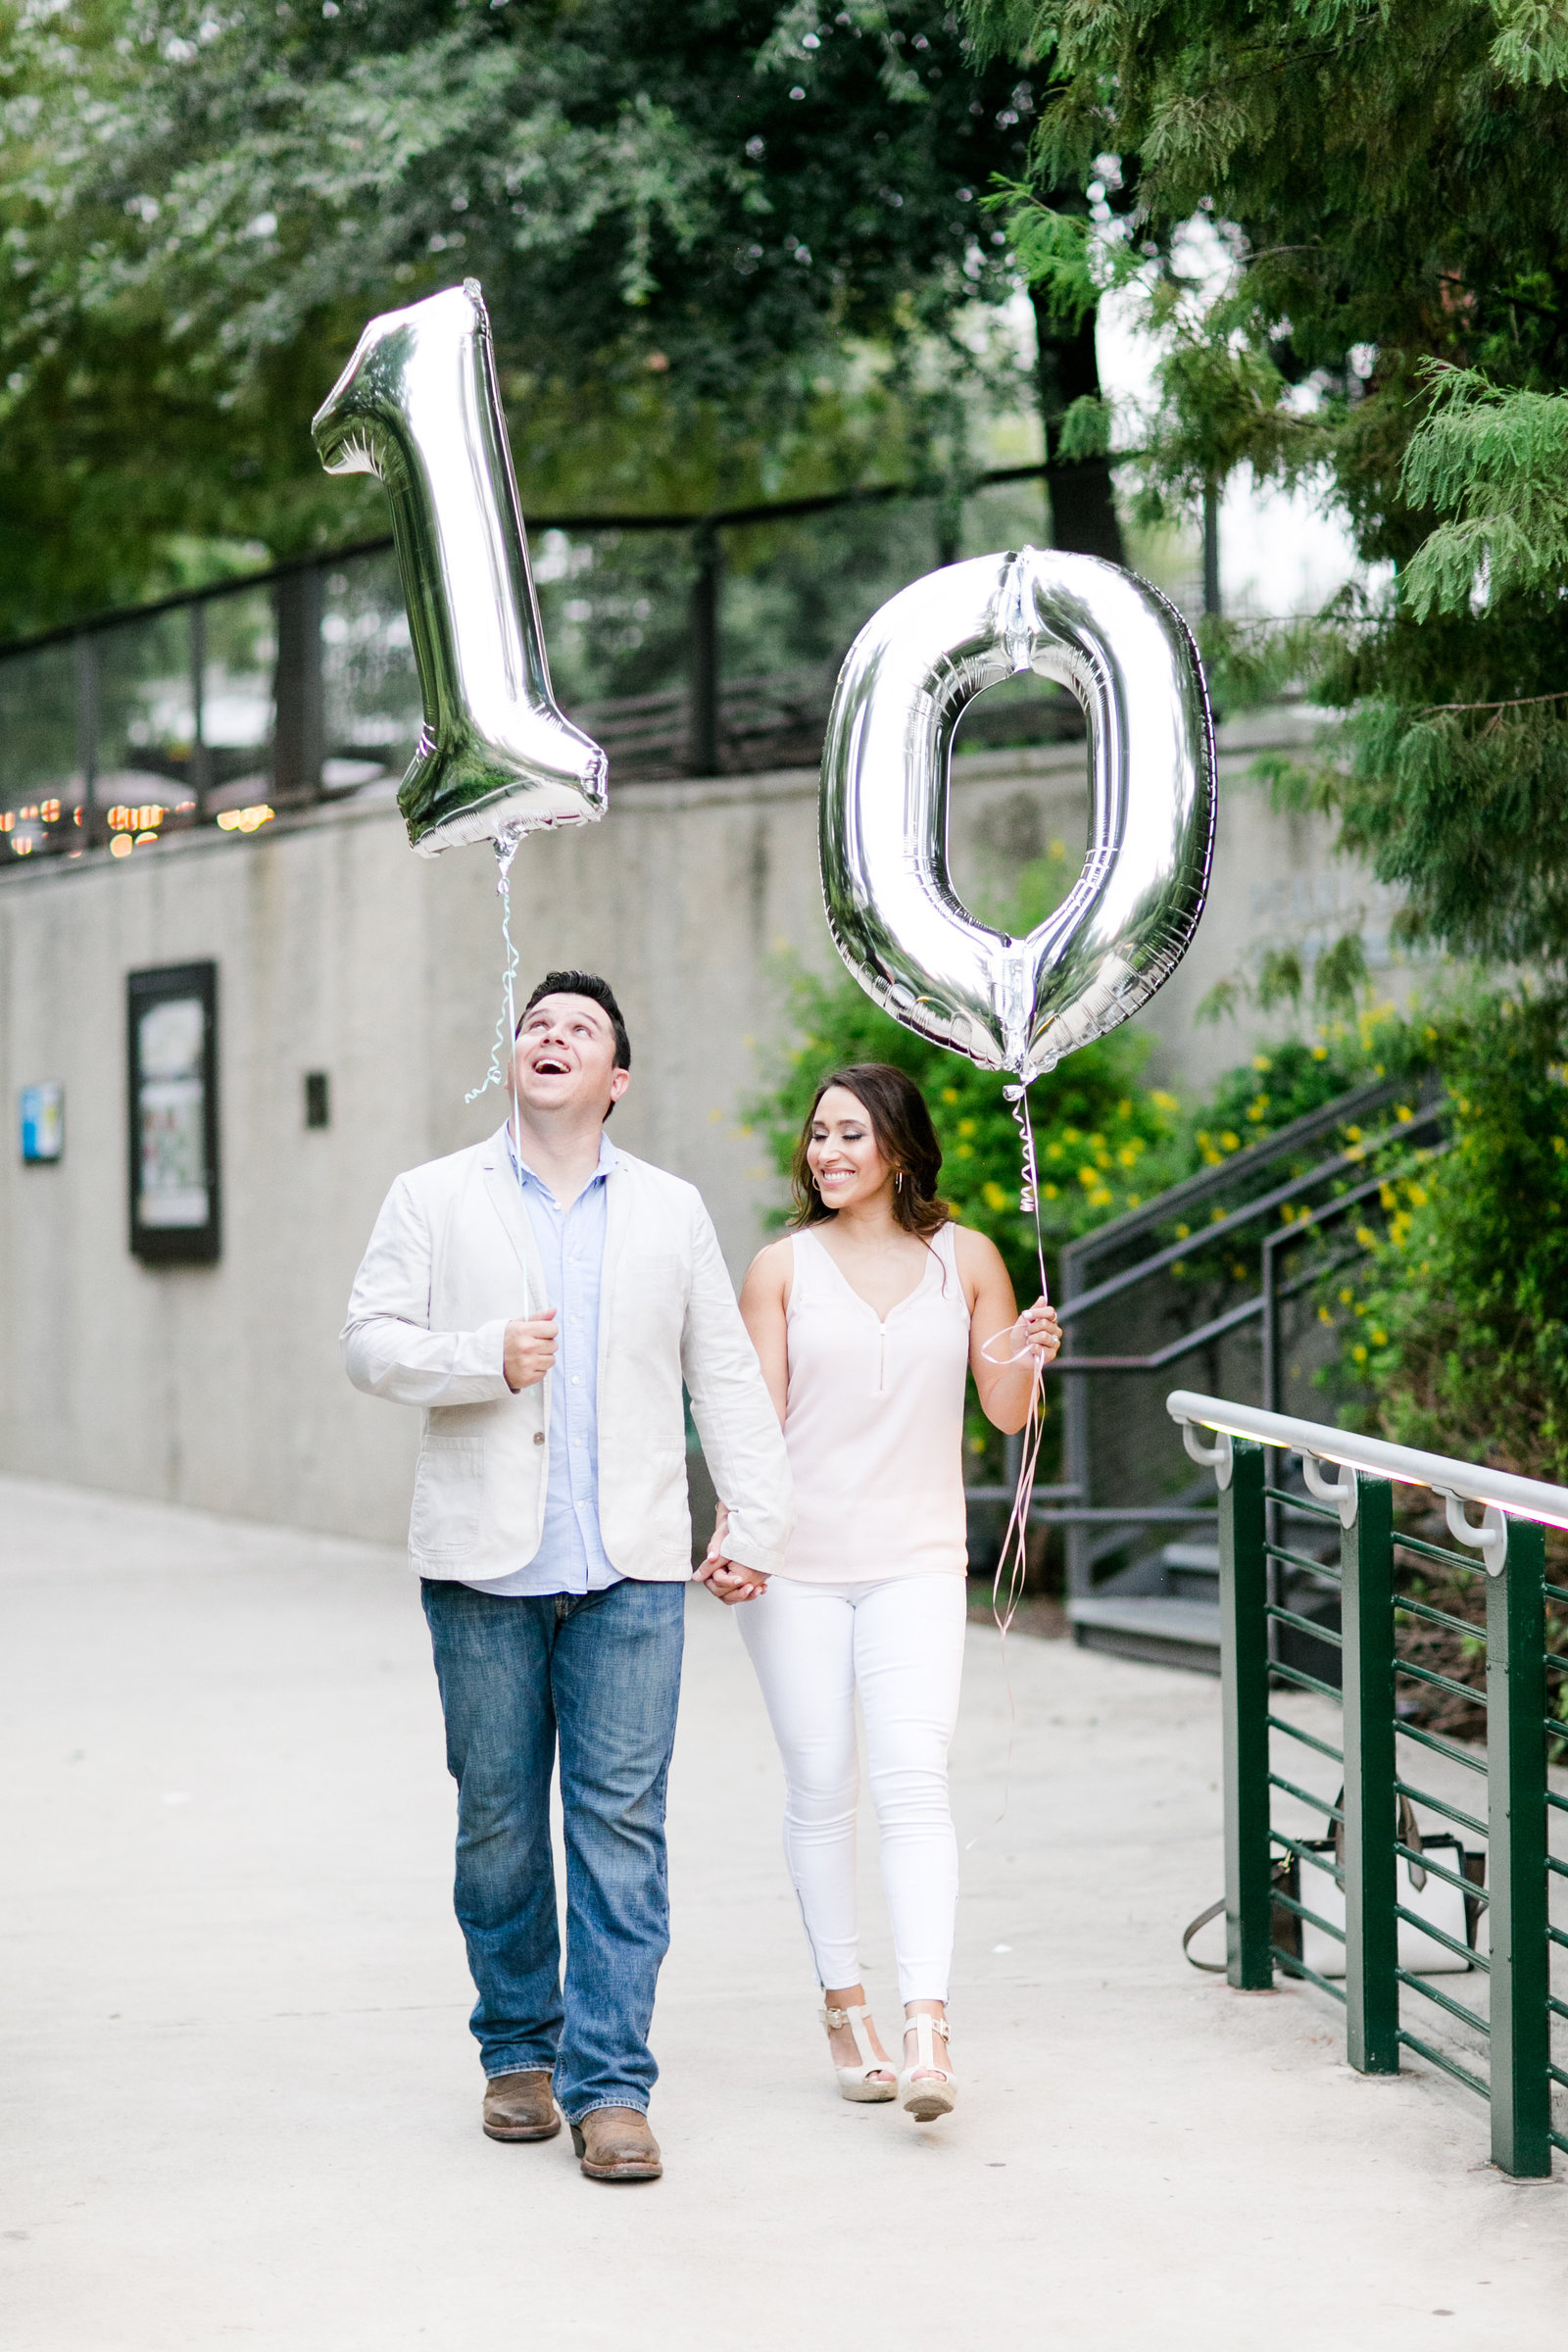 pearl-brewery-river-walk-san-antonio-tx-engagement-session-photo-64